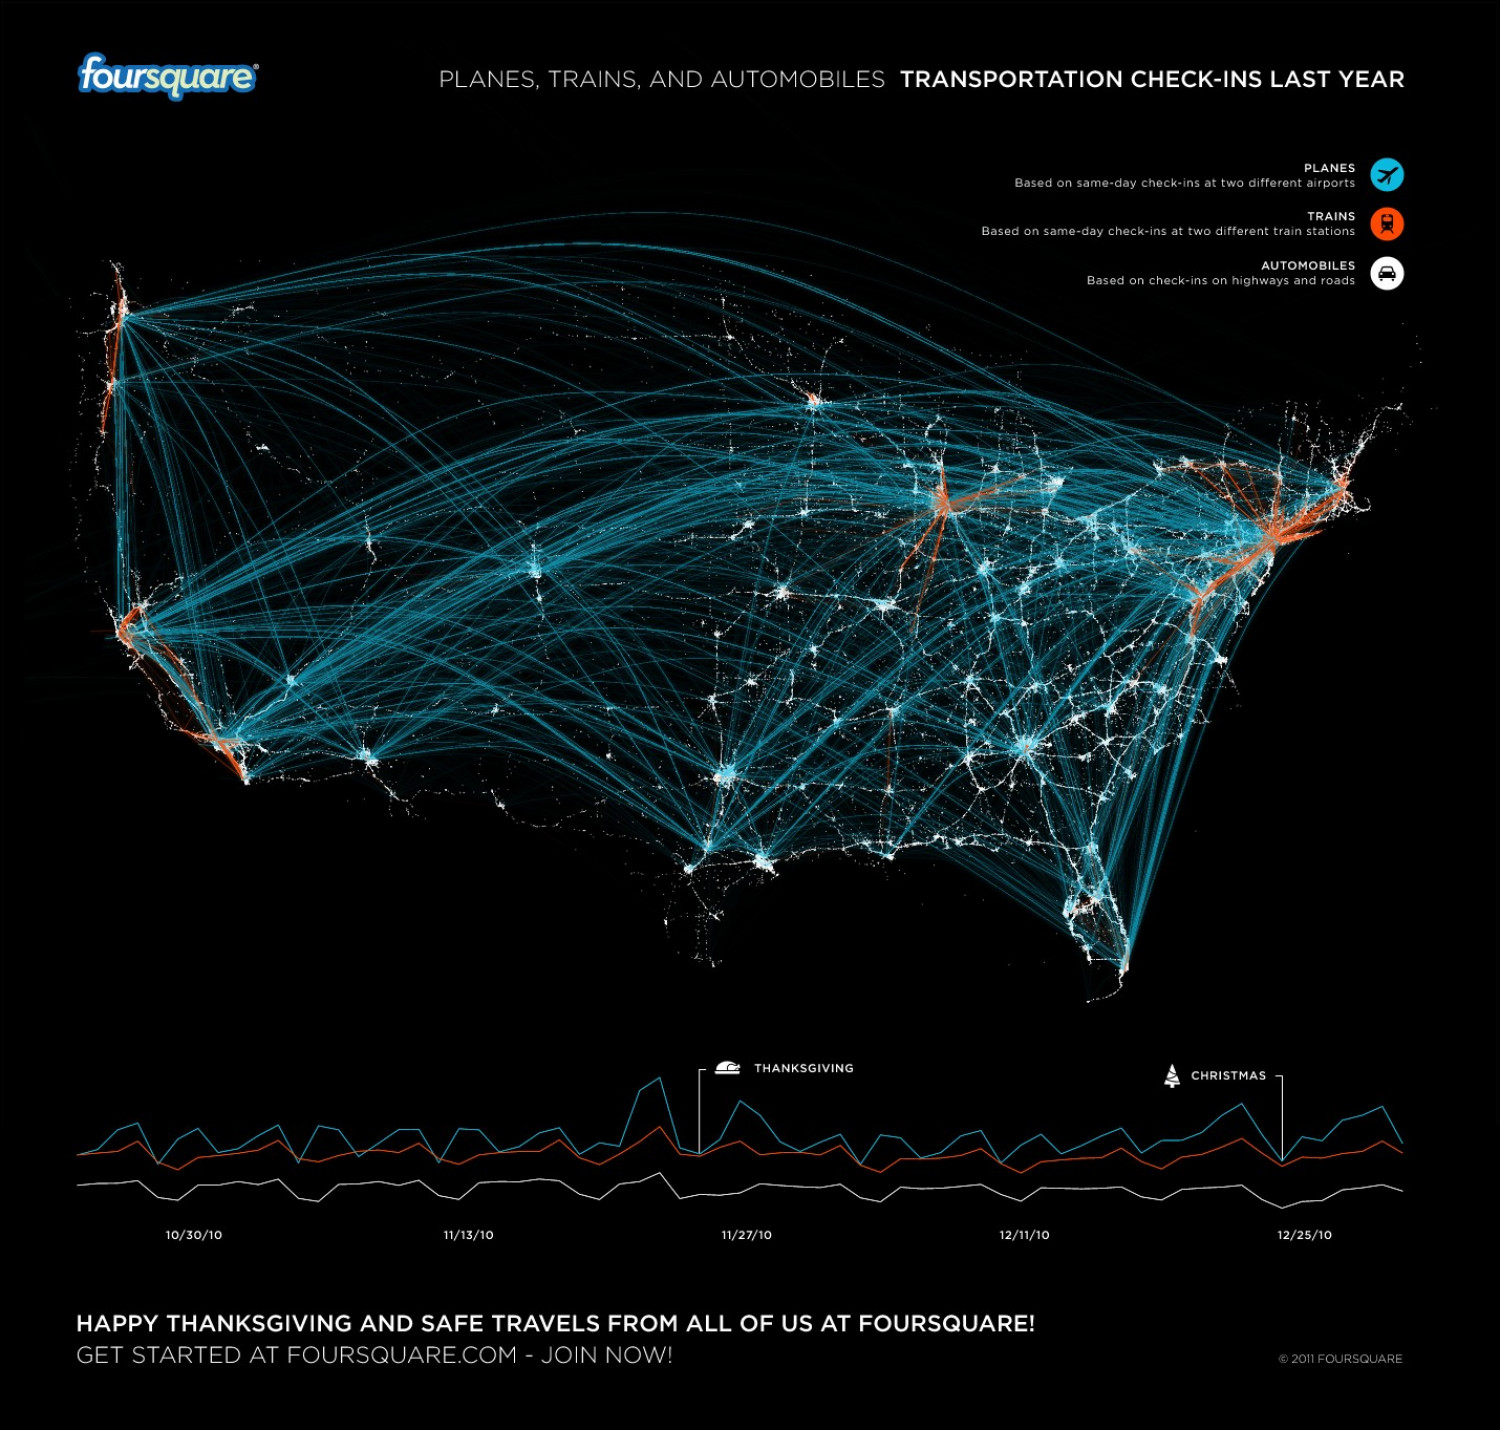 Foursquare Checkins Reveal Holiday Travel Patterns Infographic